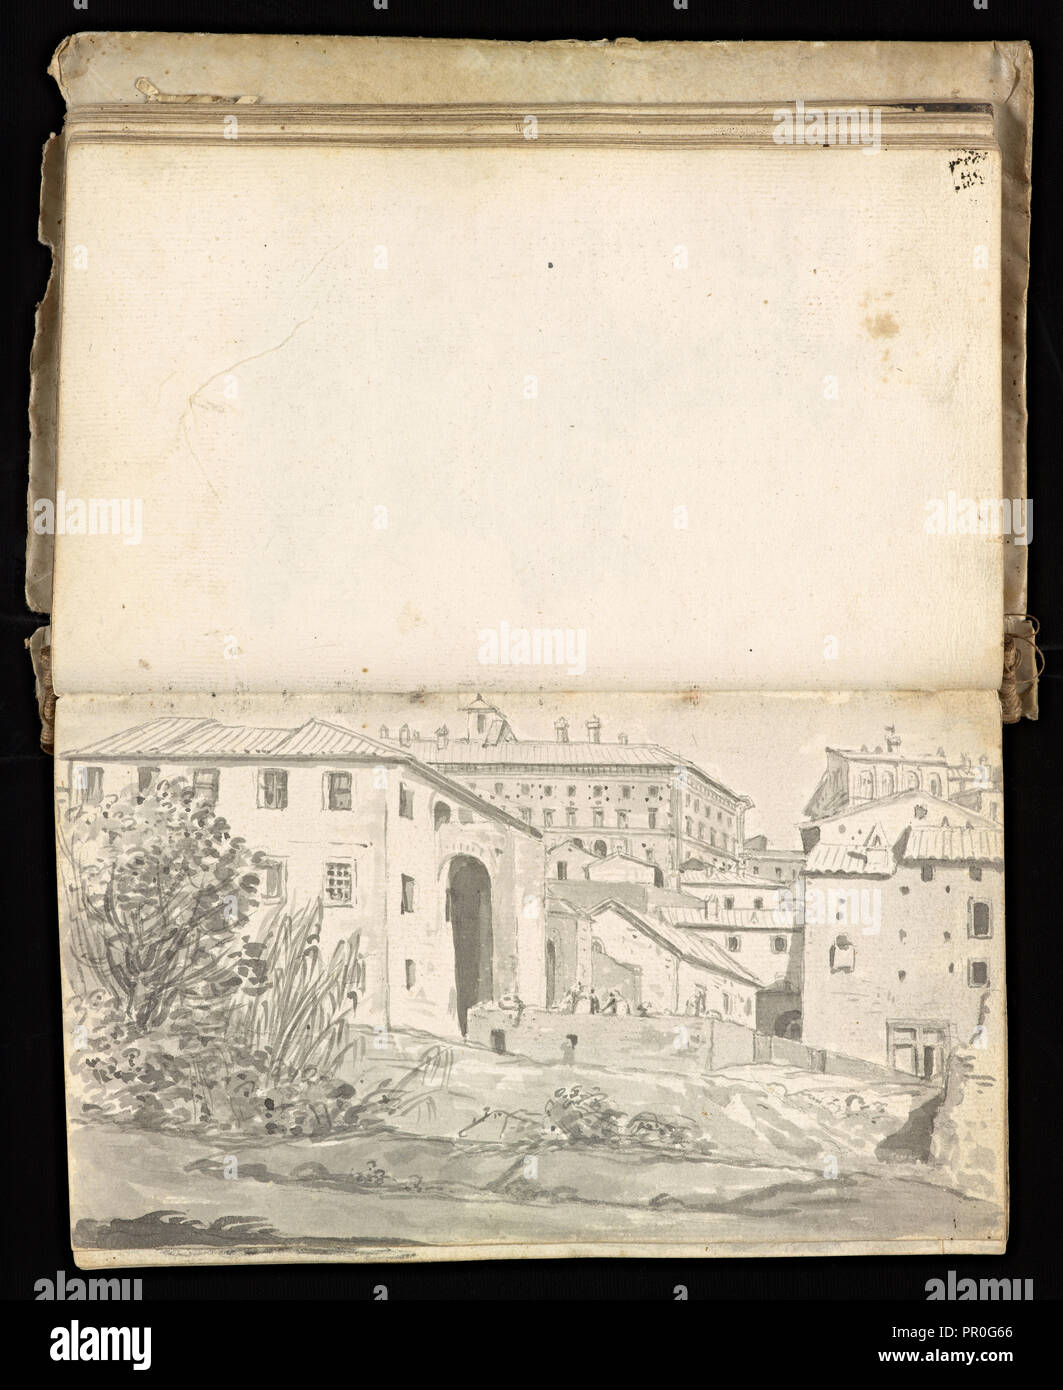 Glama-Stroberle, Joaõ, 1708-1792, pencil, ink, chalk, wash, 1741,  Sketchbook II of III dated 14 February 1741